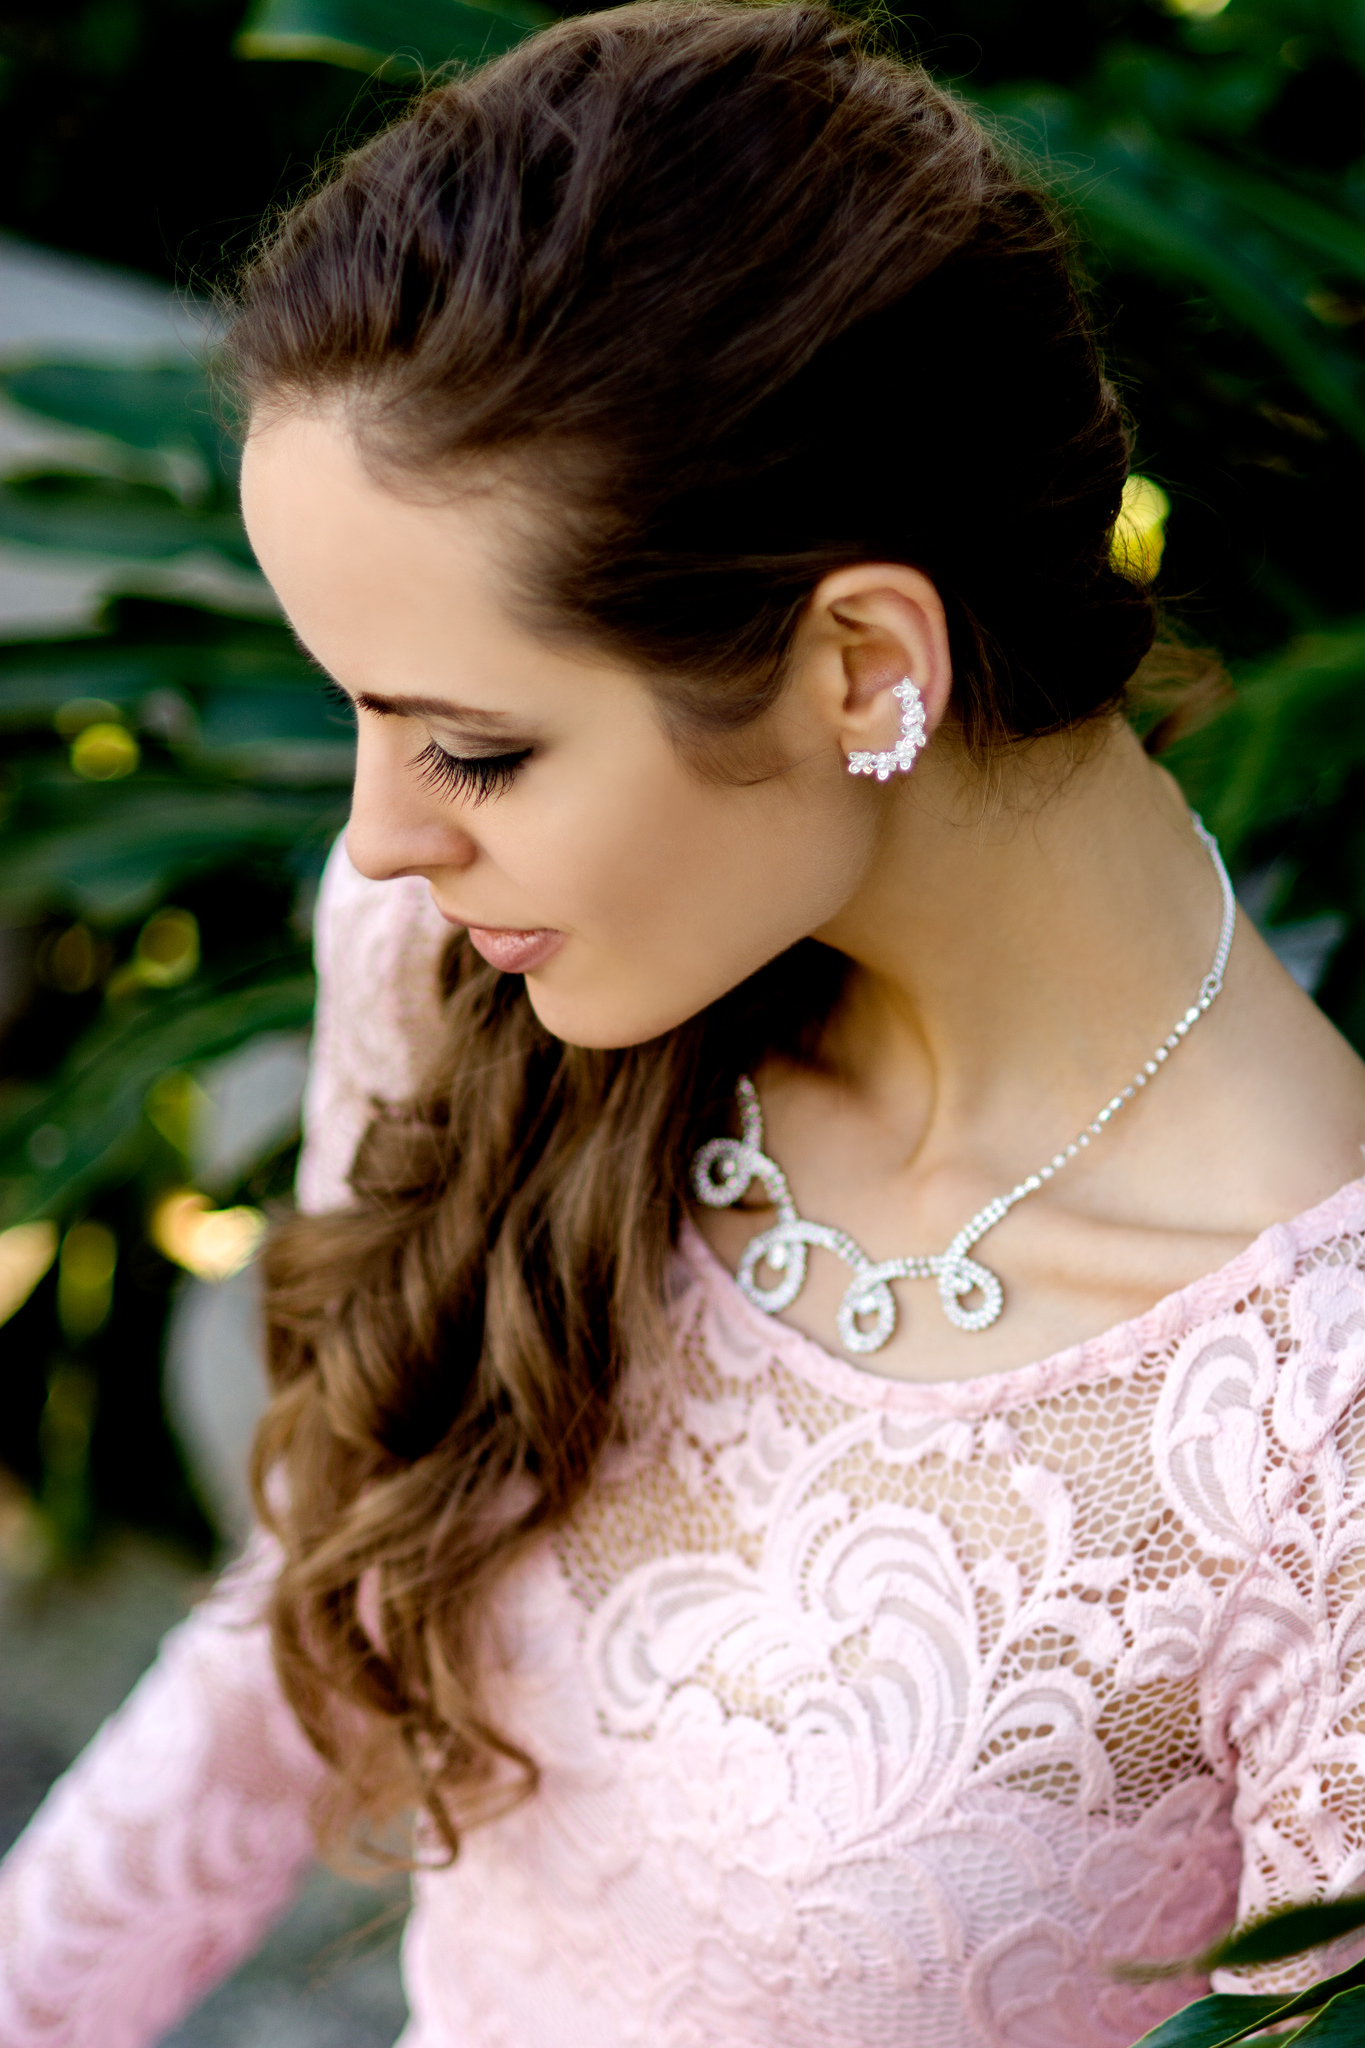 A serene vintage profile shot taken by Carlie Chew Photography in the gardens of historic St. Petersburg, FL